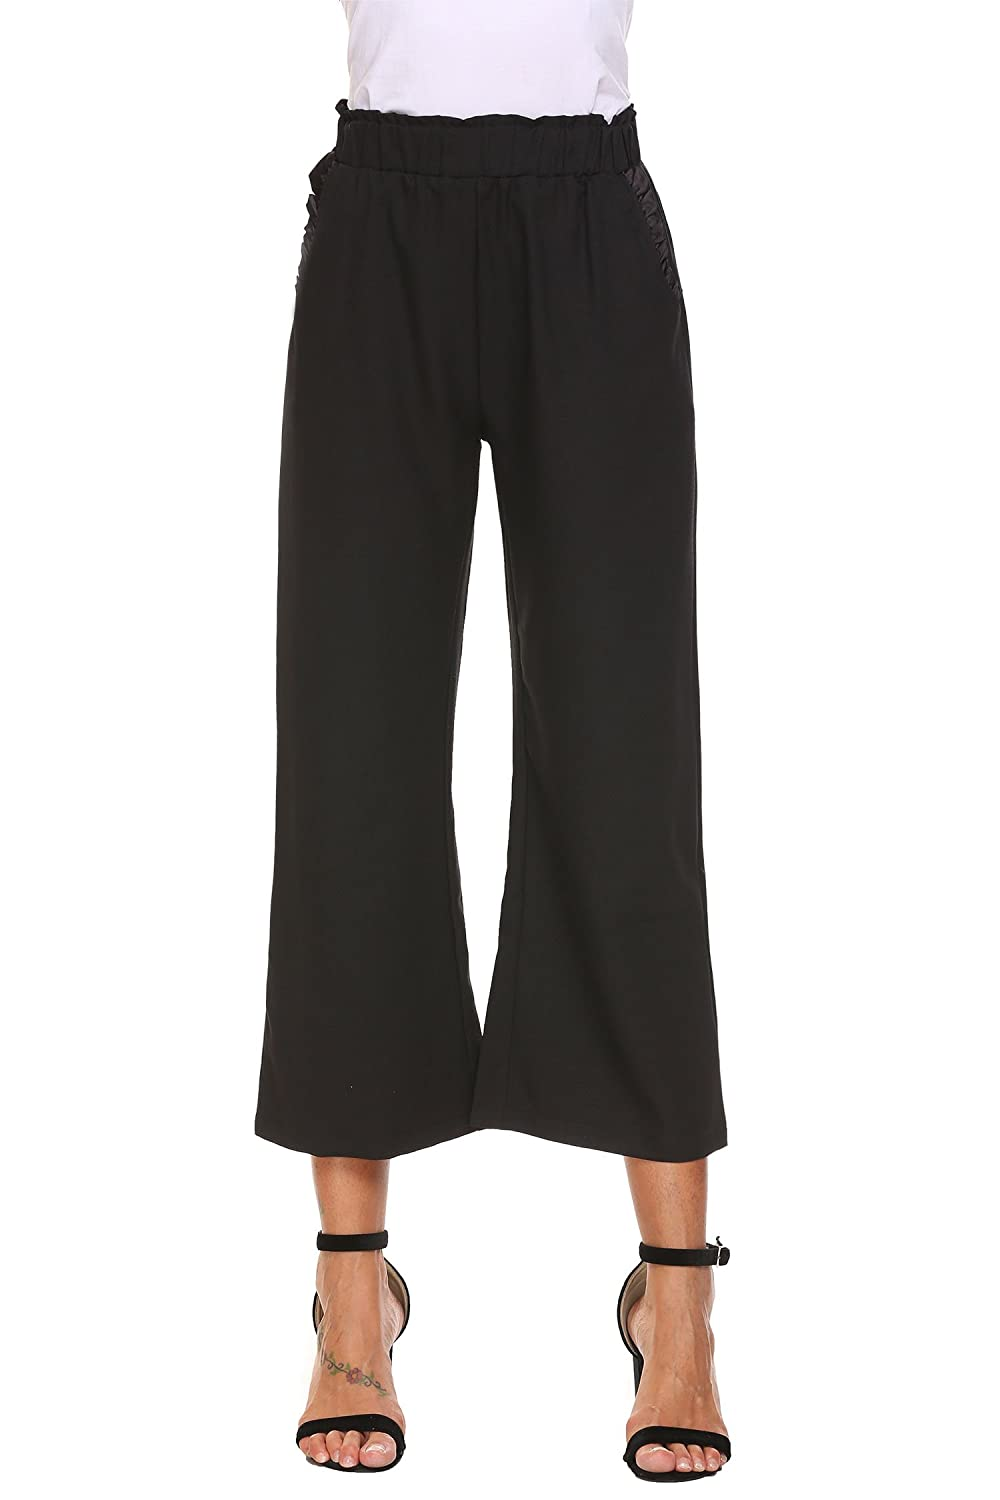 Chigant Women Elastic Waist Pull On Ruffles Wide Leg Casual Loose Cropped Pants